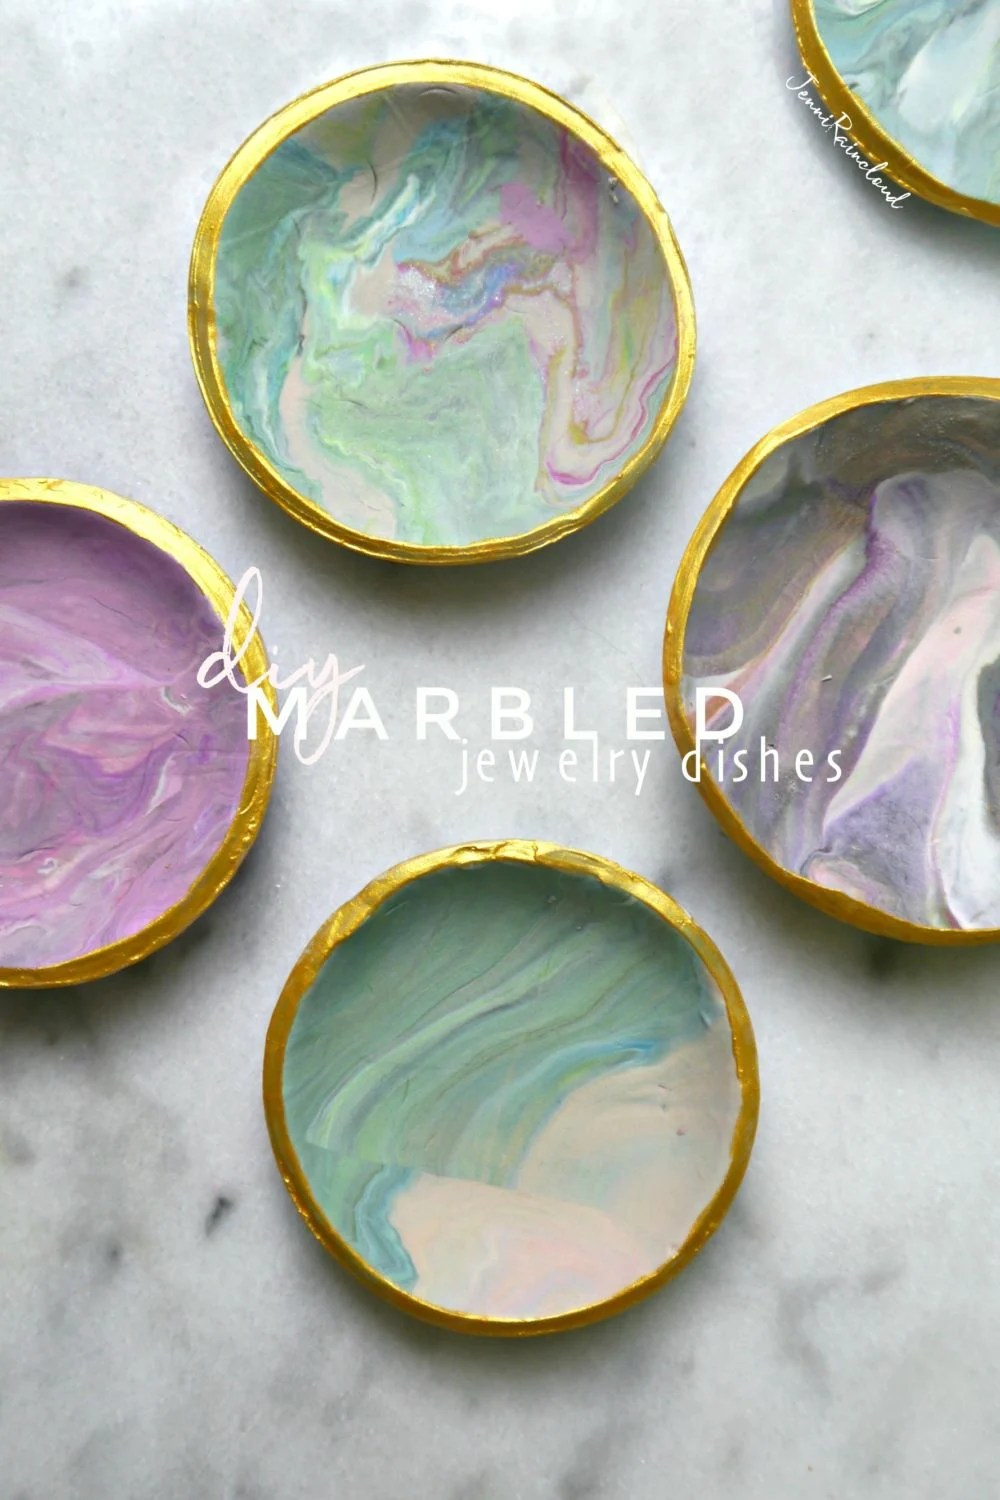 DIY Marbled Clay Jewelry Dishes